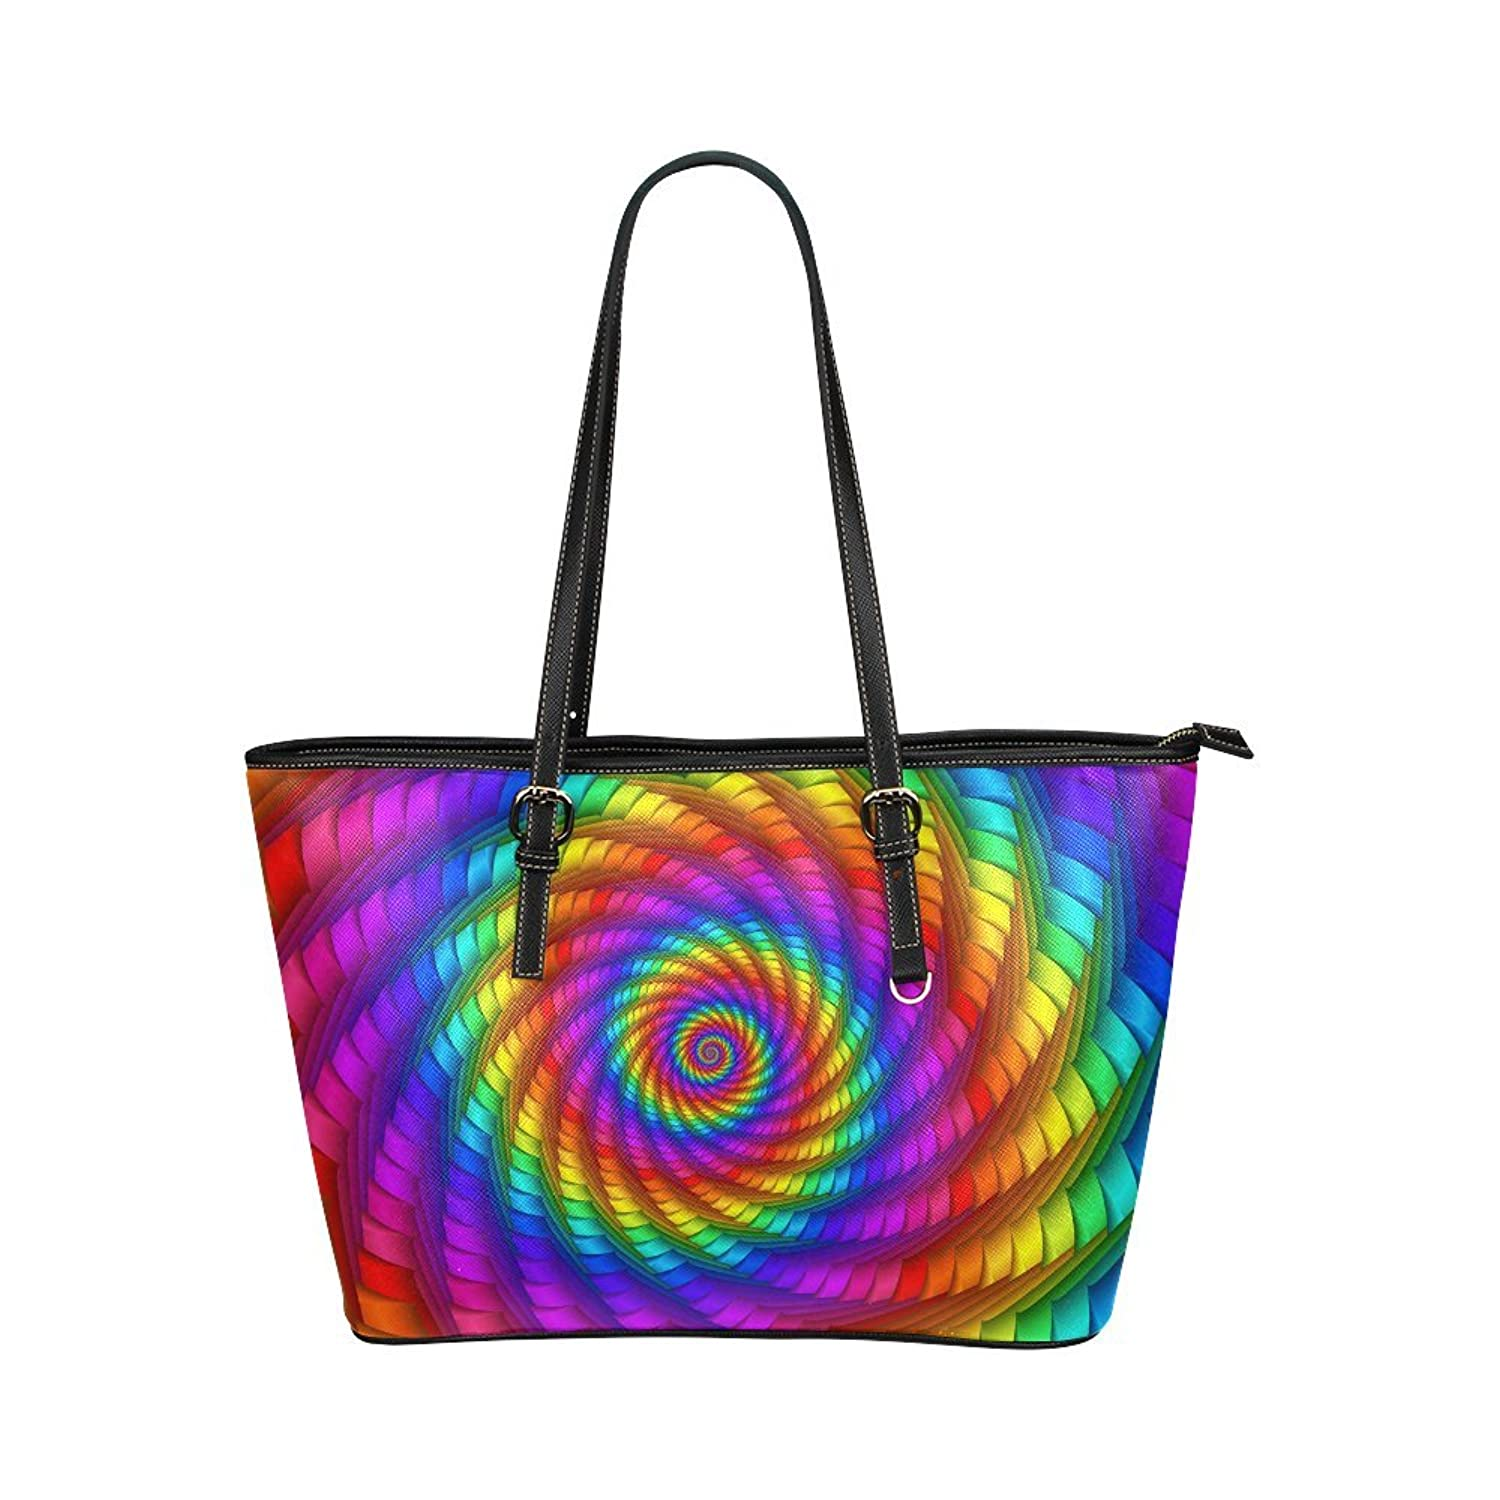 Pyschedelic Rainbow Spiral Custom Women's Leather Tote Large Bag/Handbag/Shoulder Bag